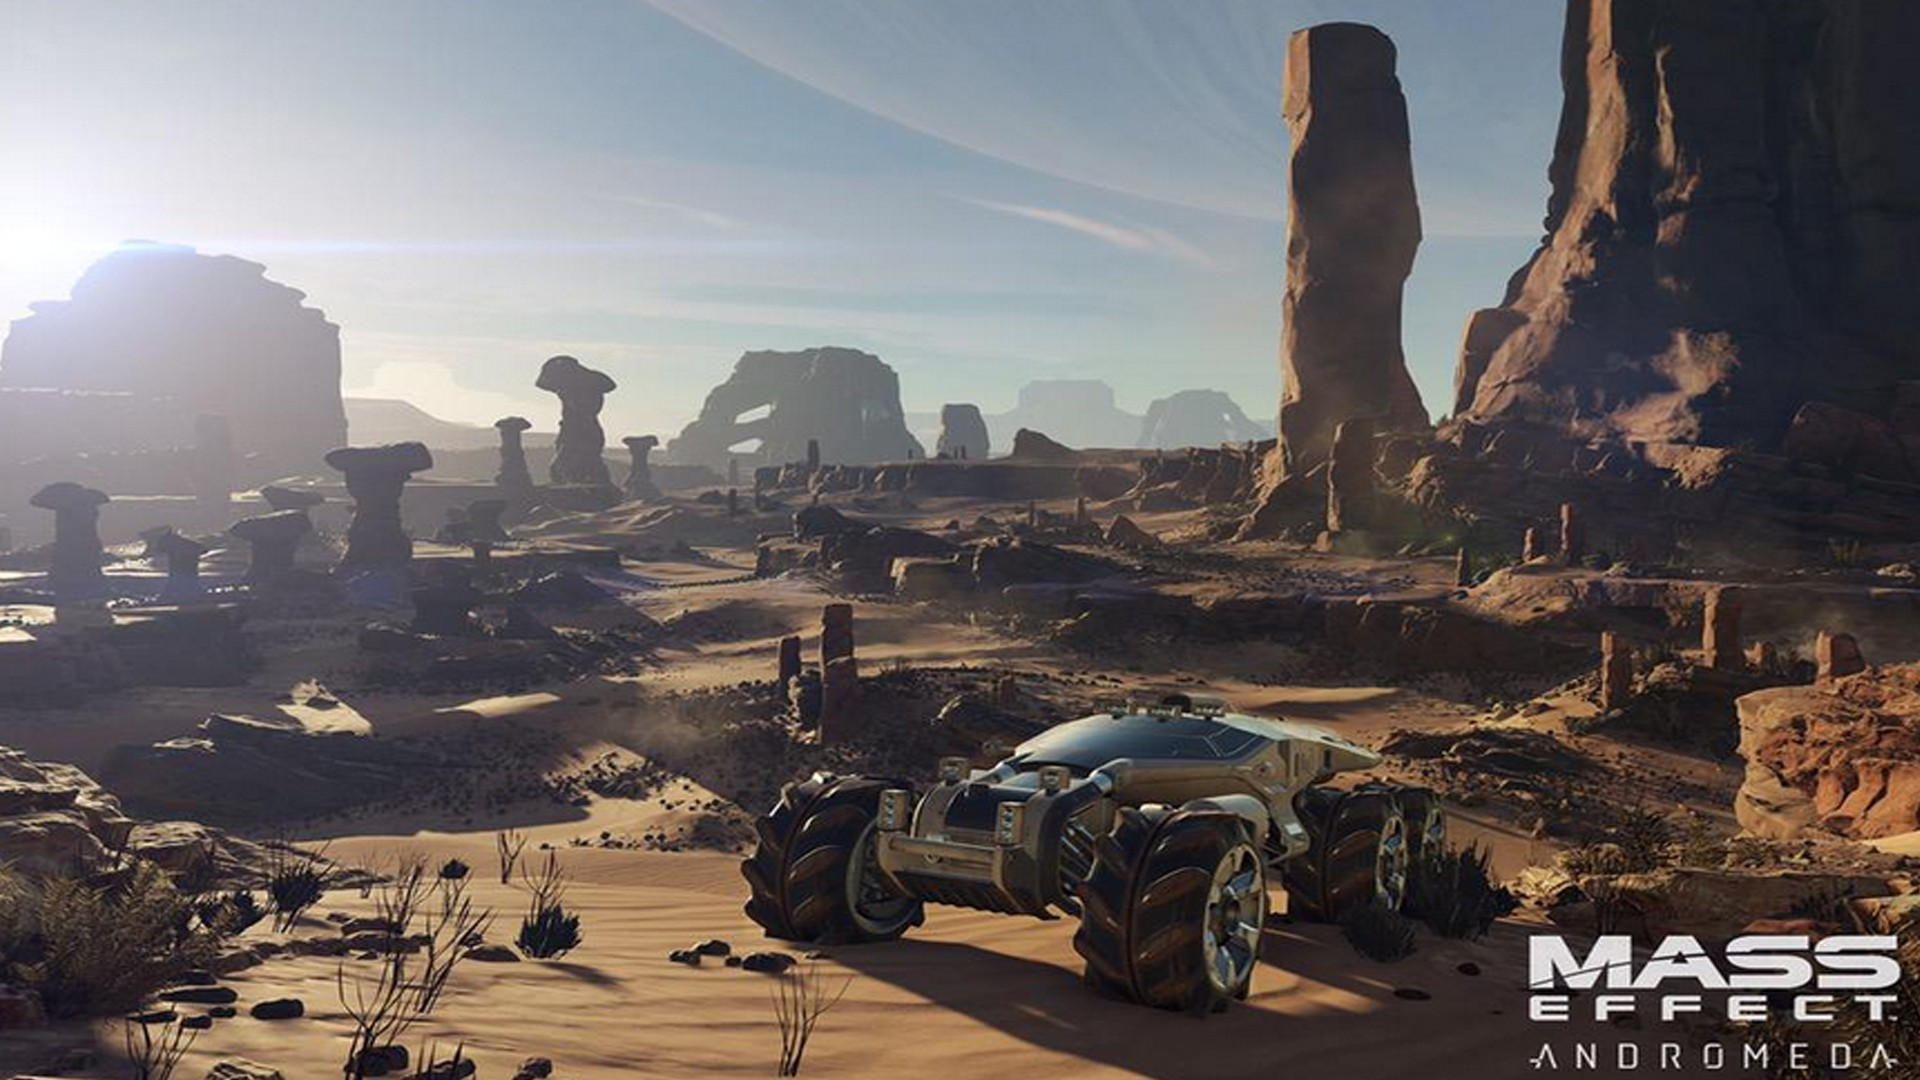 Mass Effect Andromeda. Upcoming Sci-Fi Games of 2016